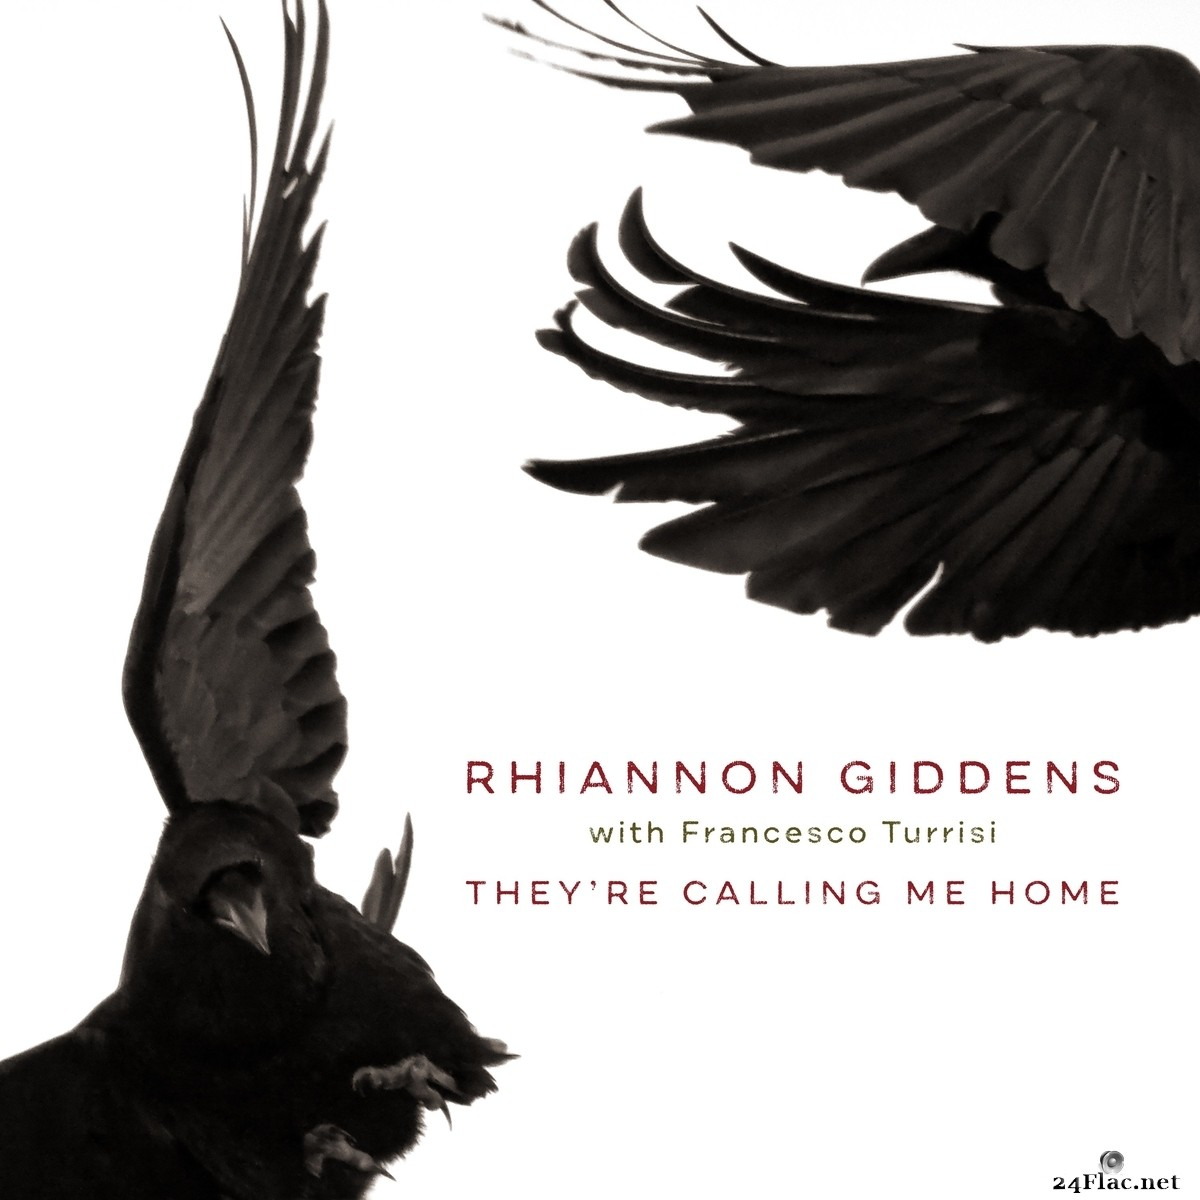 Rhiannon Giddens - They're Calling Me Home (with Francesco Turrisi) (2021) FLAC + Hi-Res